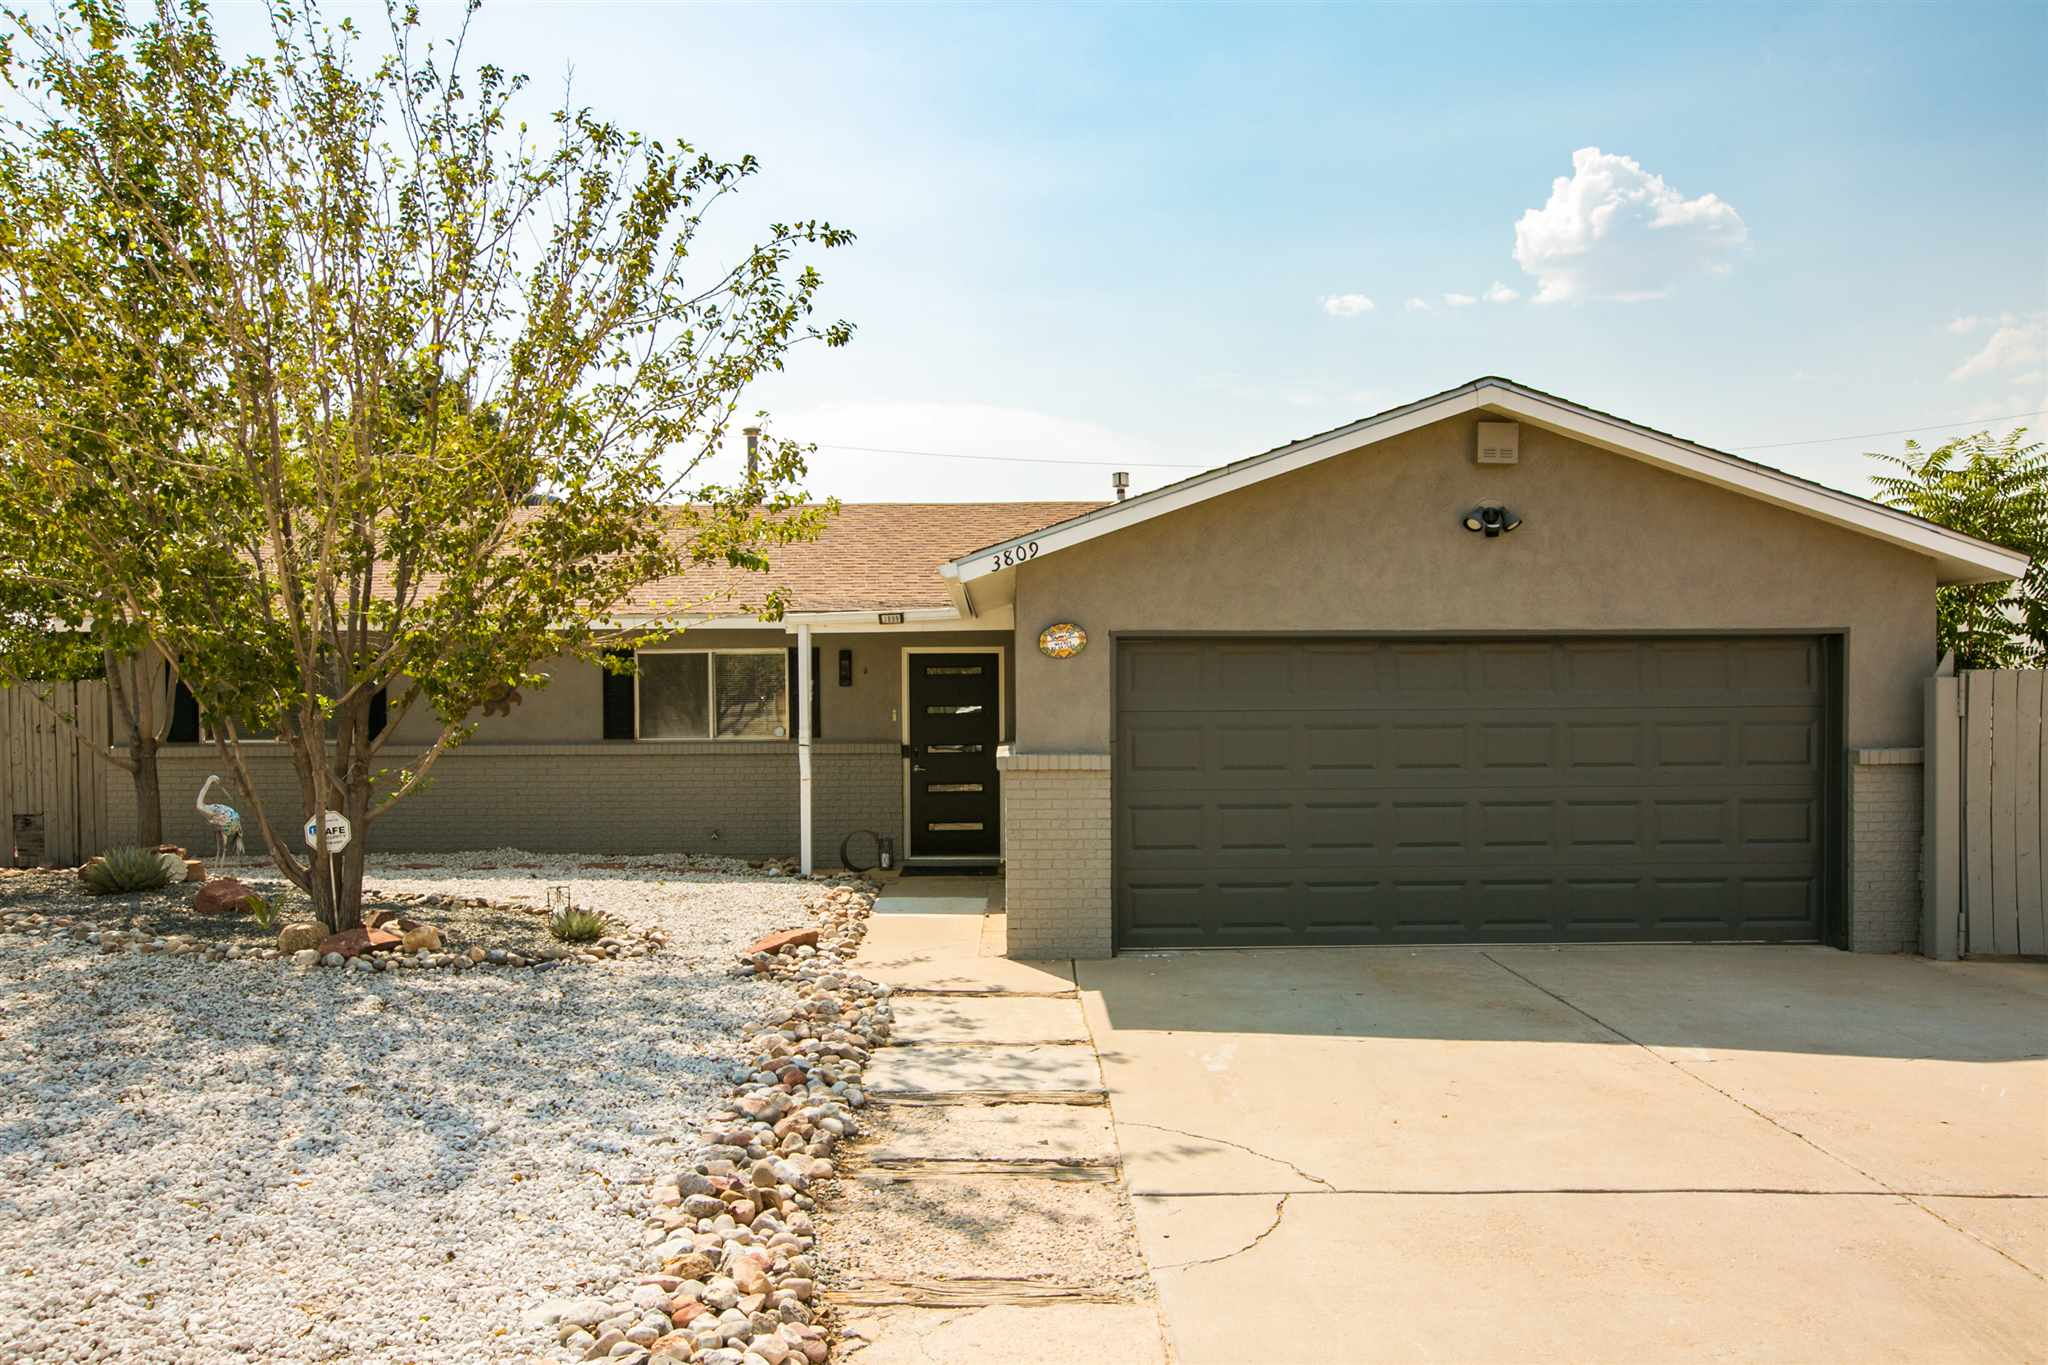 Featuring a well maintained 3 bedroom 2 bath home sits on a .22 acre lot and offers an open floor plan. New paint throughout, new HVAC system, new front door, tankless water heater,  Panel upgrade, 584 sq. ft. shop rewired, new security porch lights, zero-scaped, new fans in sunroom & great room, with a new garage remote. Beautiful faux wood flooring, bullnose finished granite, and cultured marble surround showers. A spacious great room has a warm and tranquil retreat with wood finished ceilings and walls, comfortable bancos and a kiva pellet stove to provide relaxation, rest and entertaining. Great central location to all ammentities.